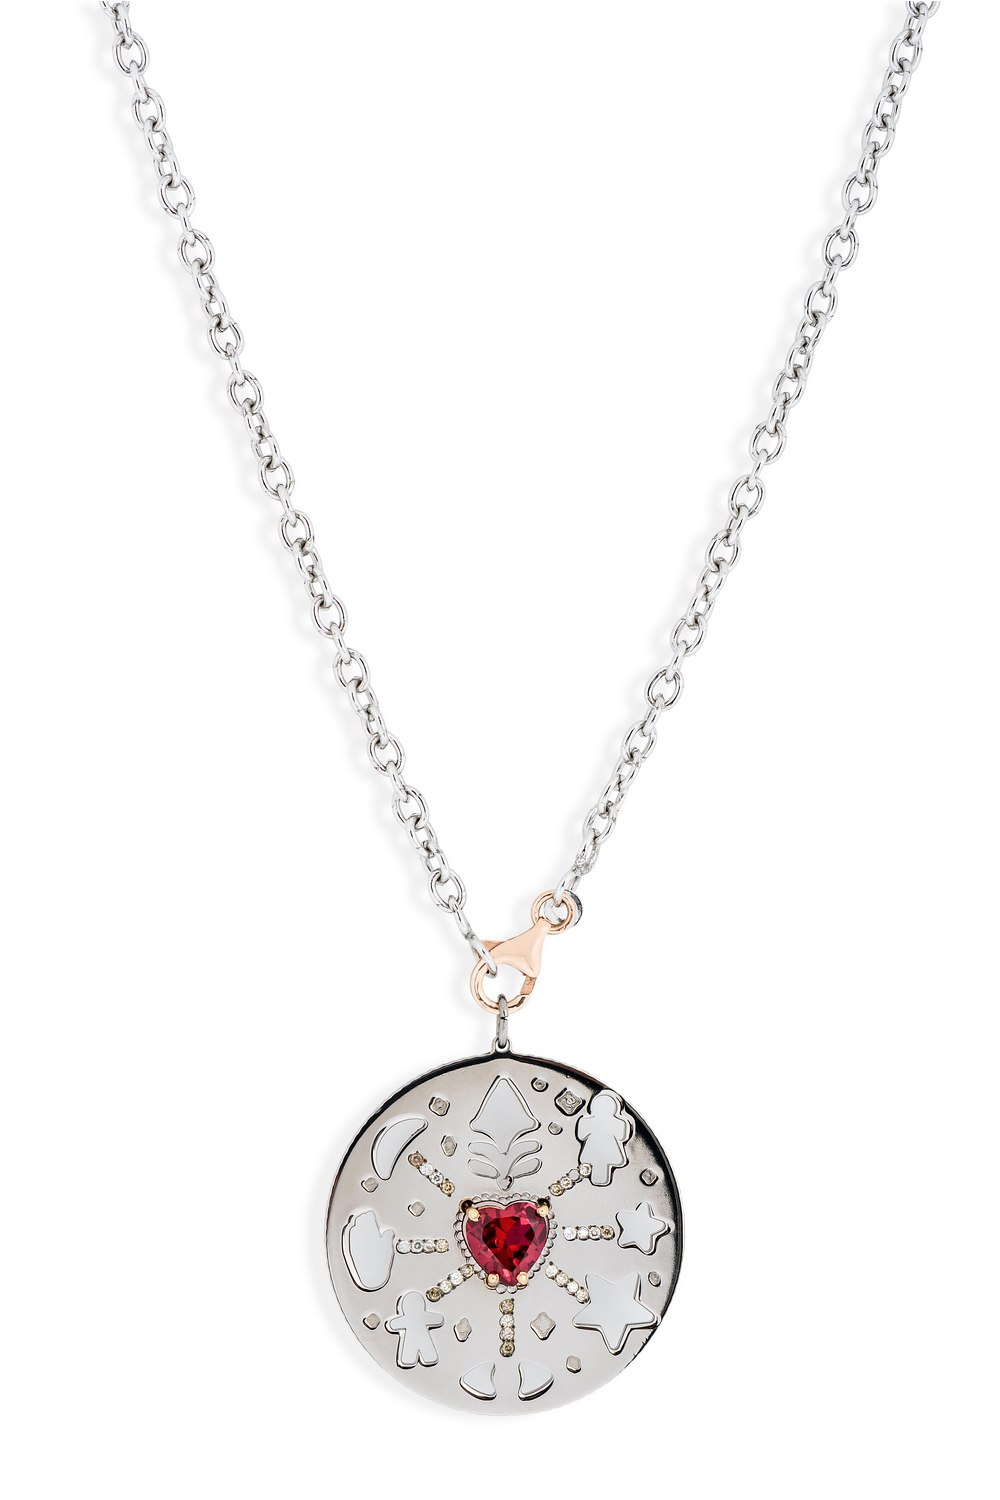 Red Heart Existential Love Pendant